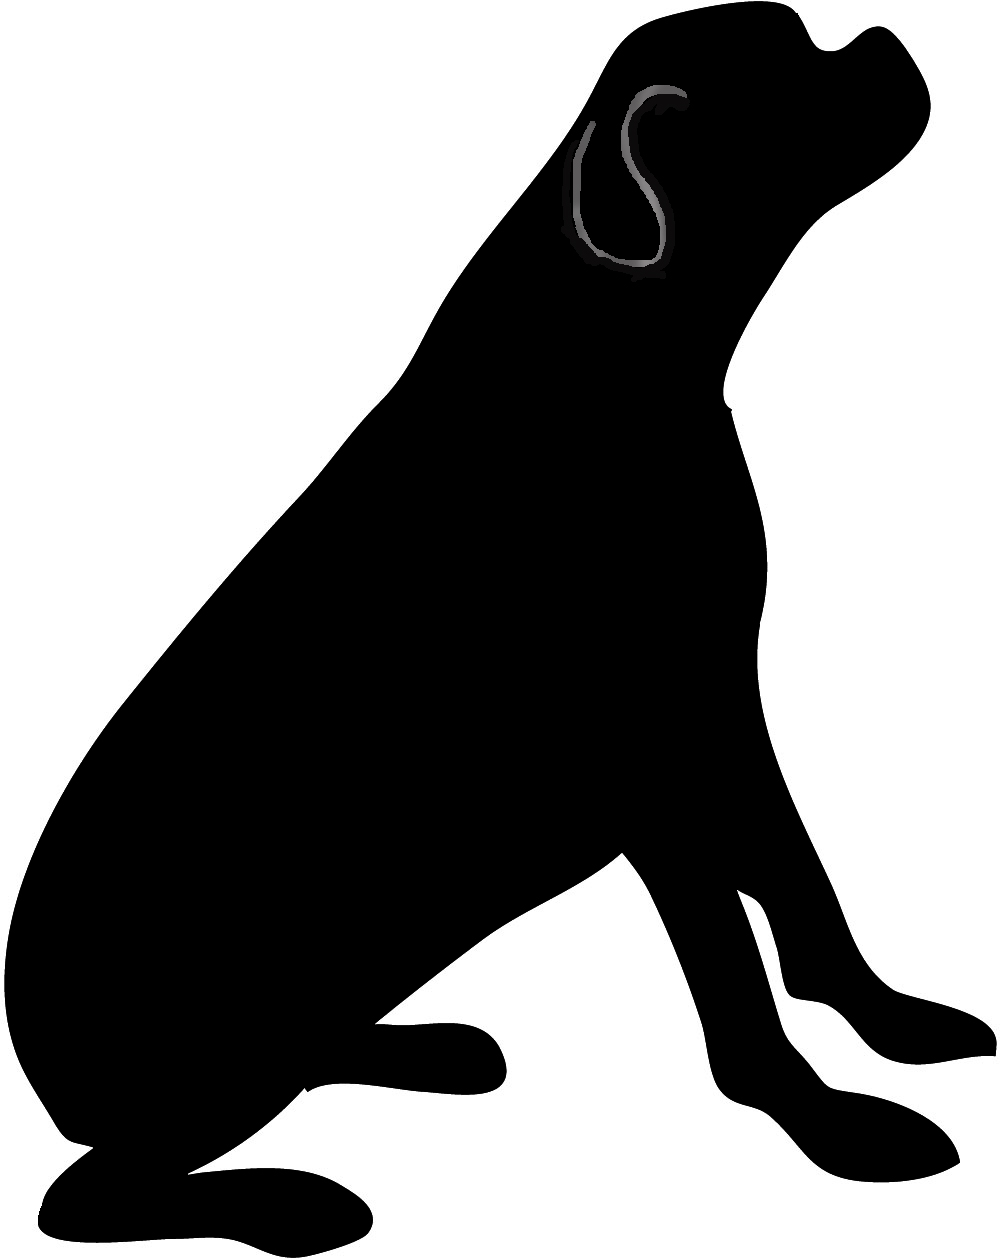 Dog Sitting Silhouette Clipart - Clipart Suggest